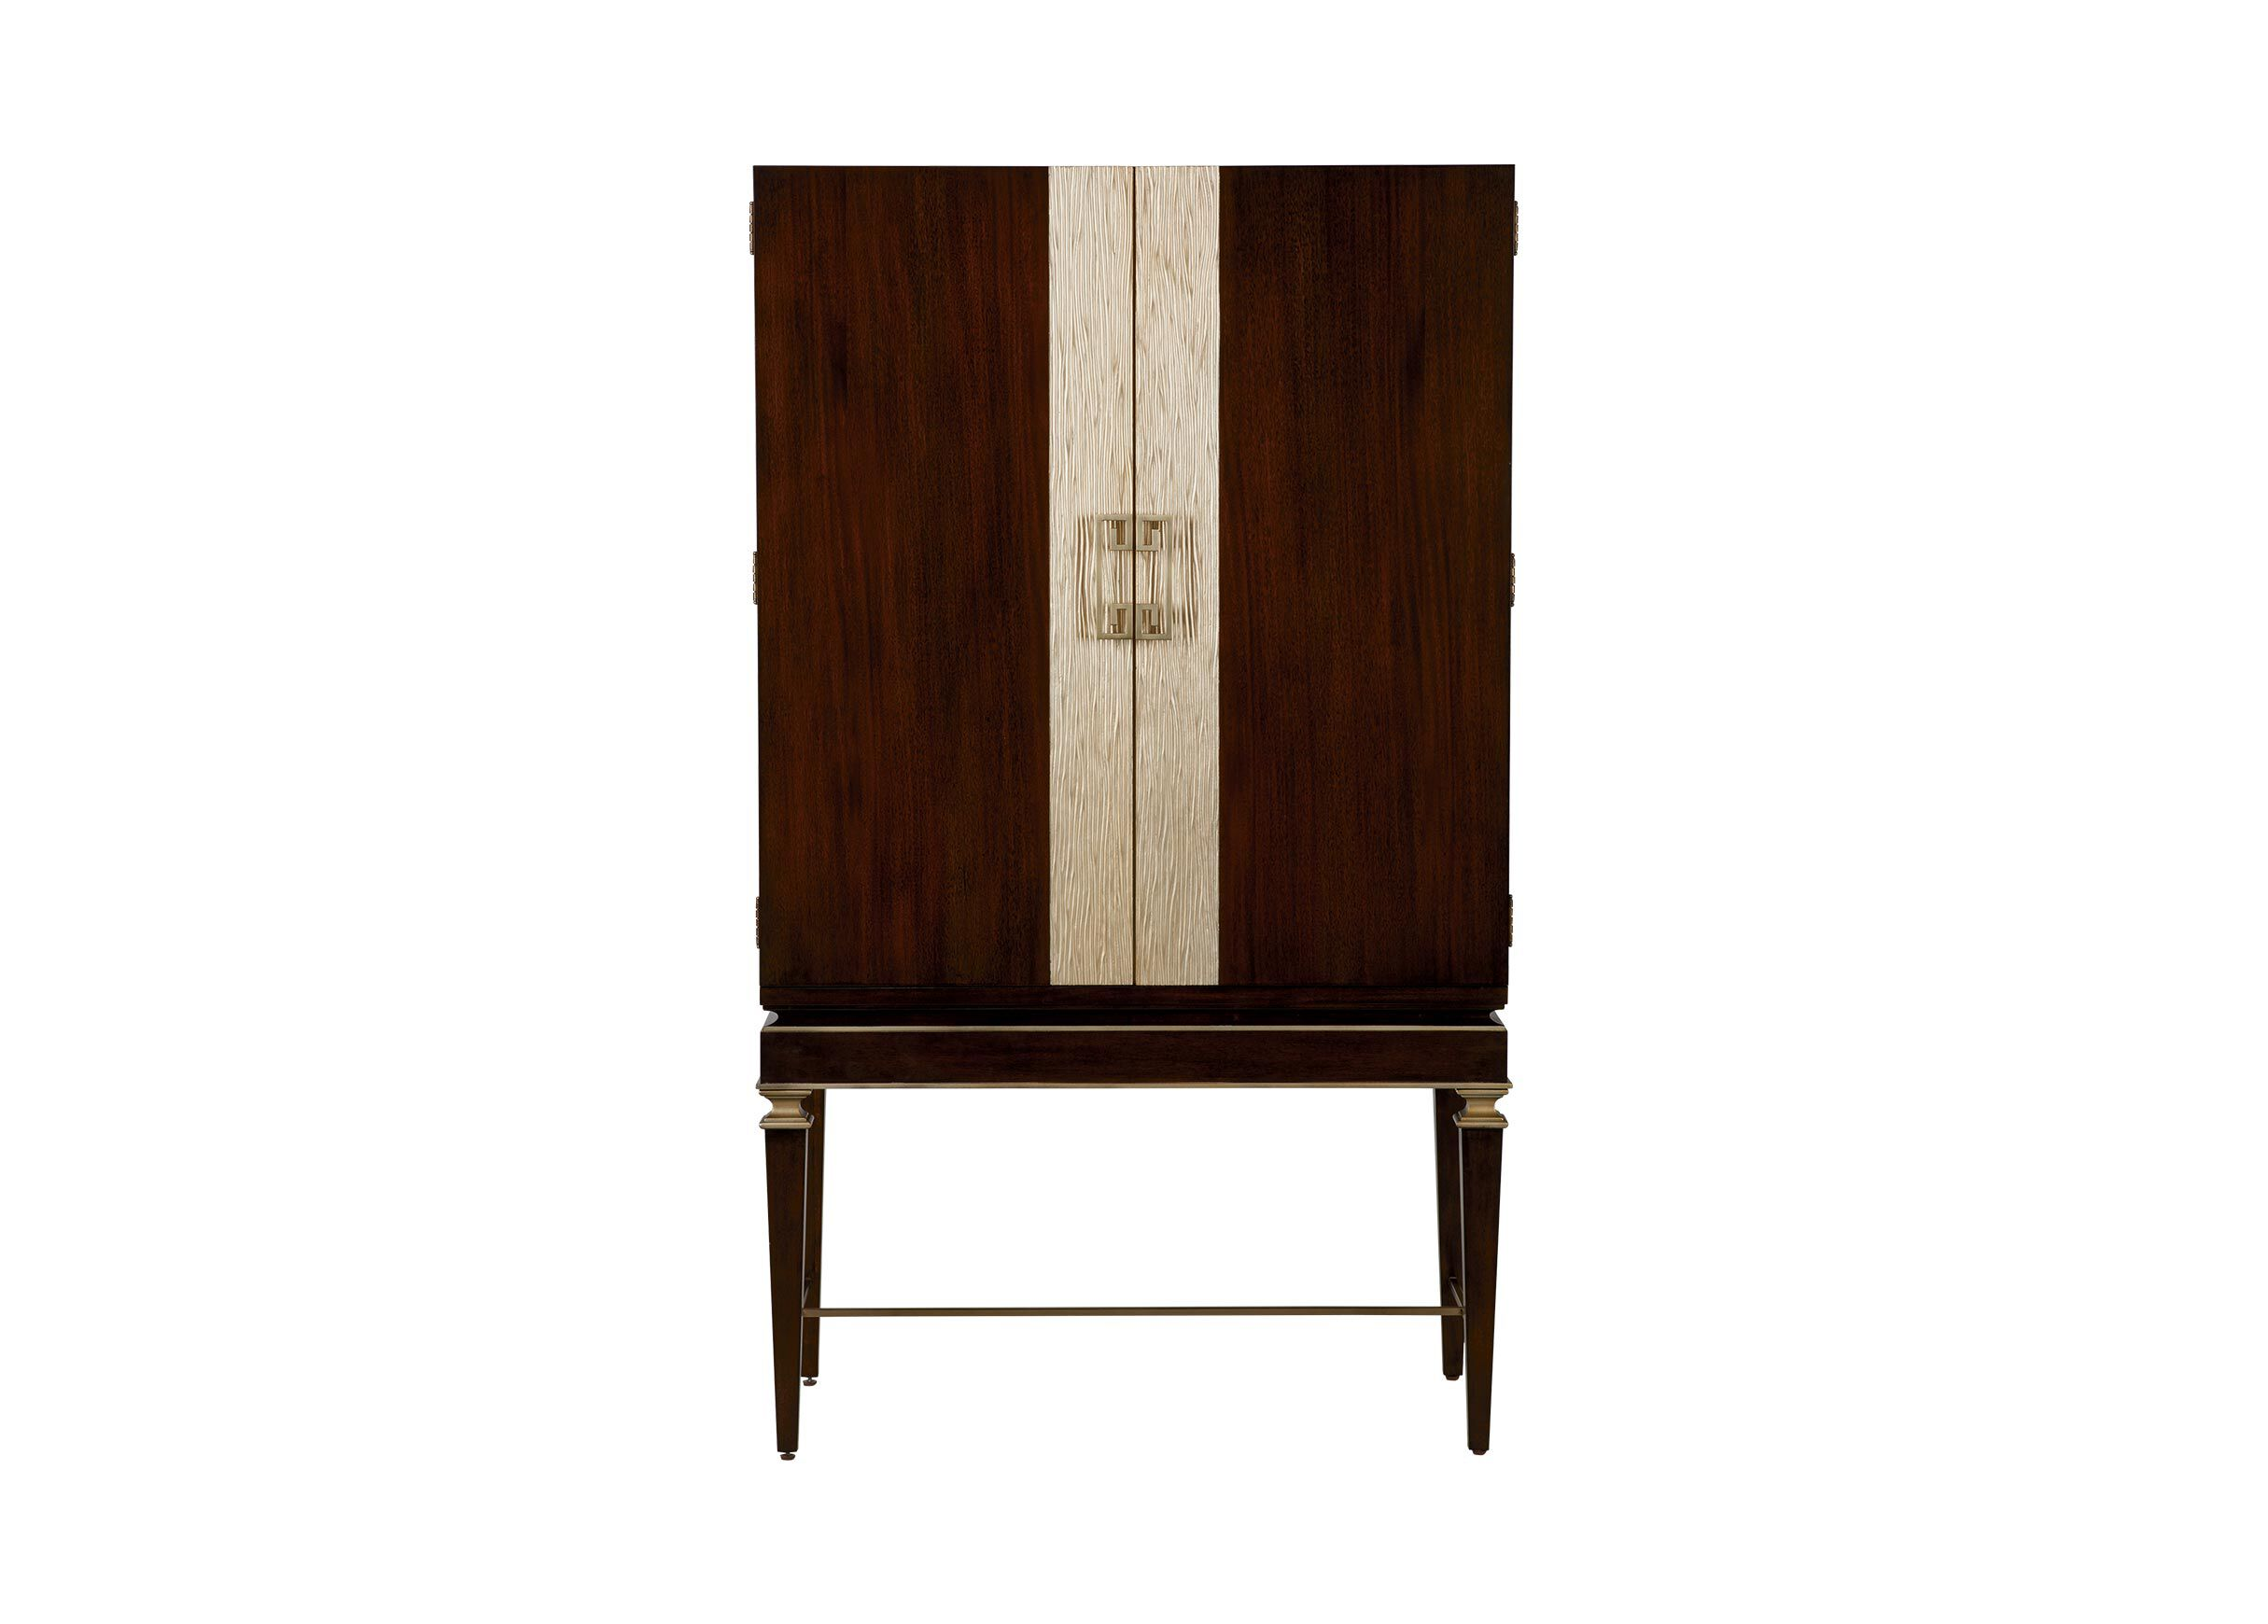 Etonnant Images Evansview Bar Cabinet